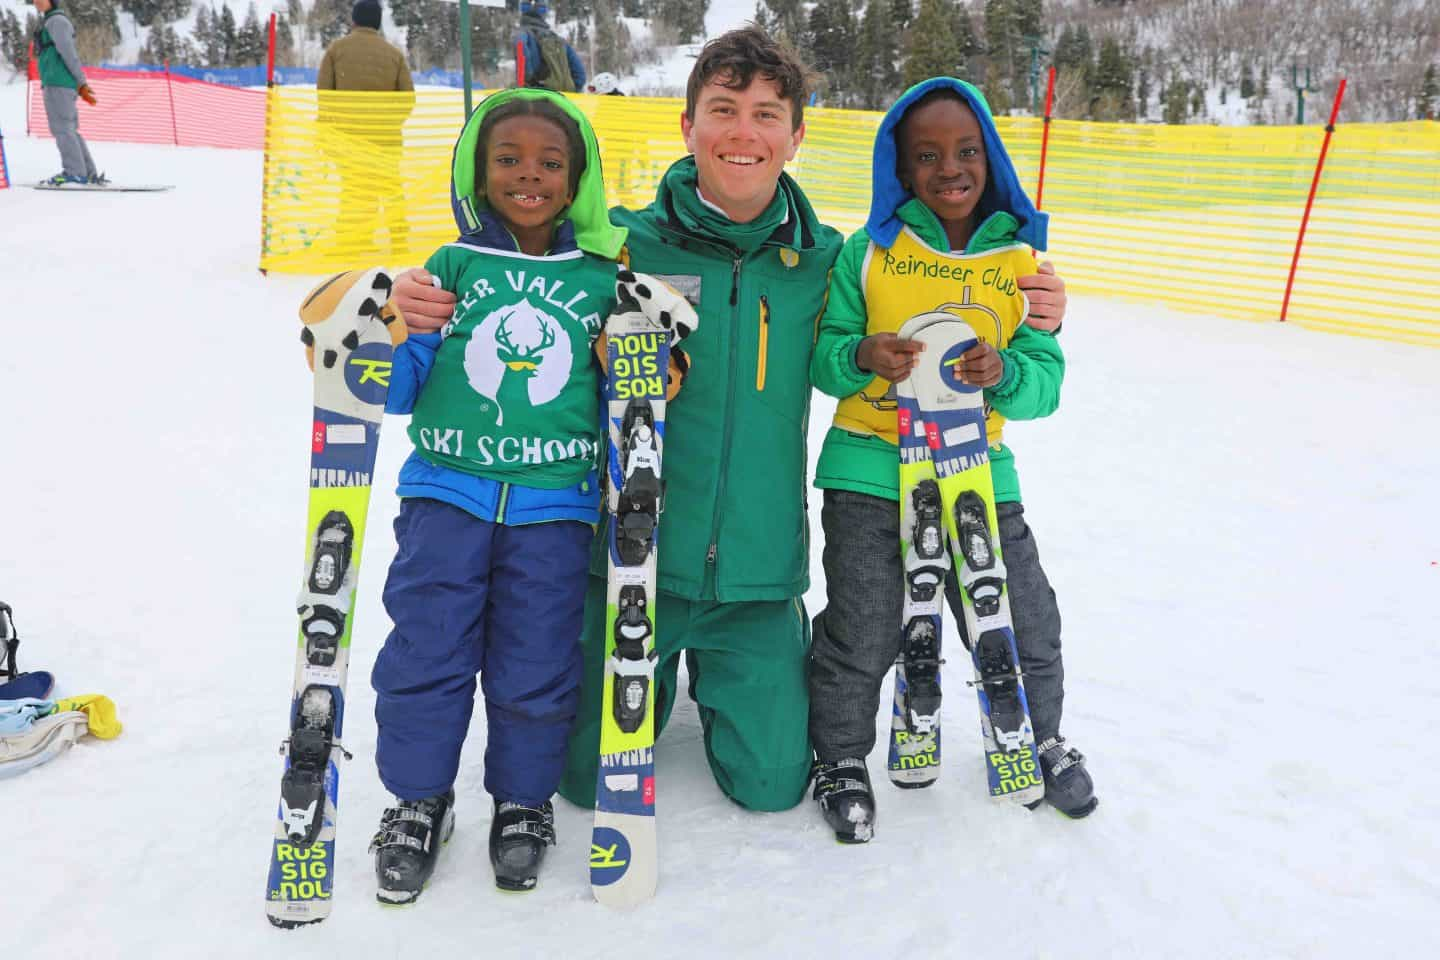 black kids receive ski lesson from instructor